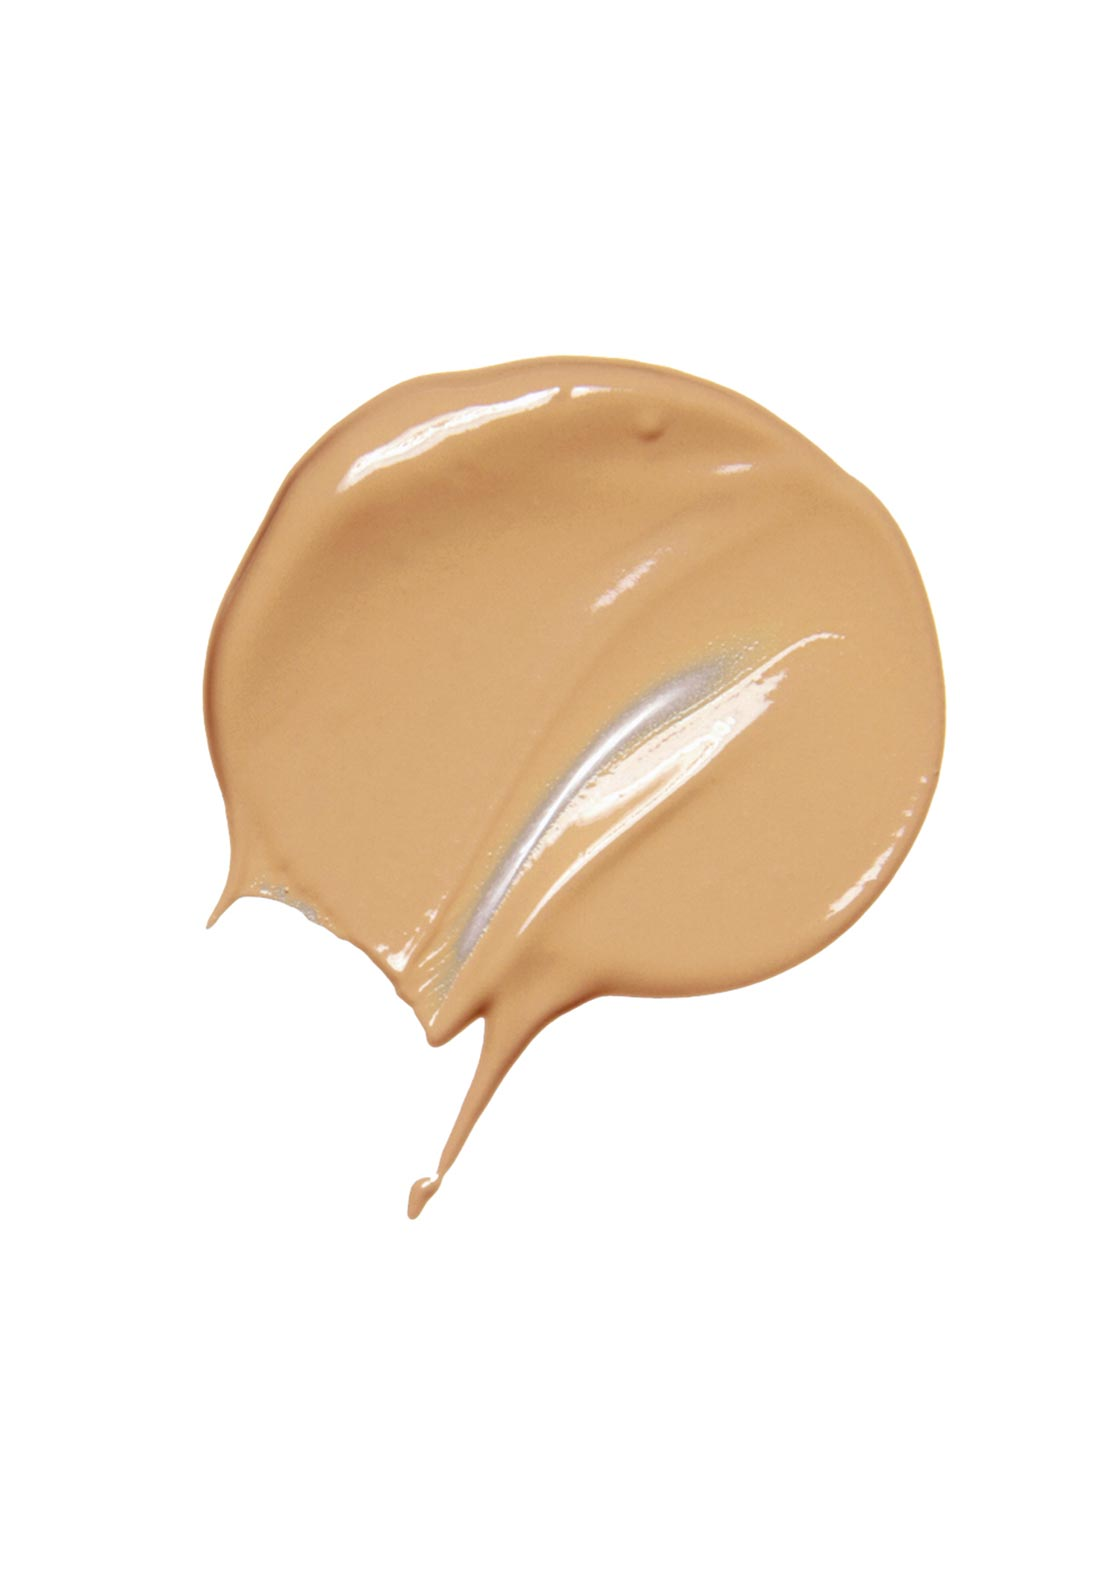 Clarins SPF15 True Radiance Foundation 112.5 Caramel, 30ml